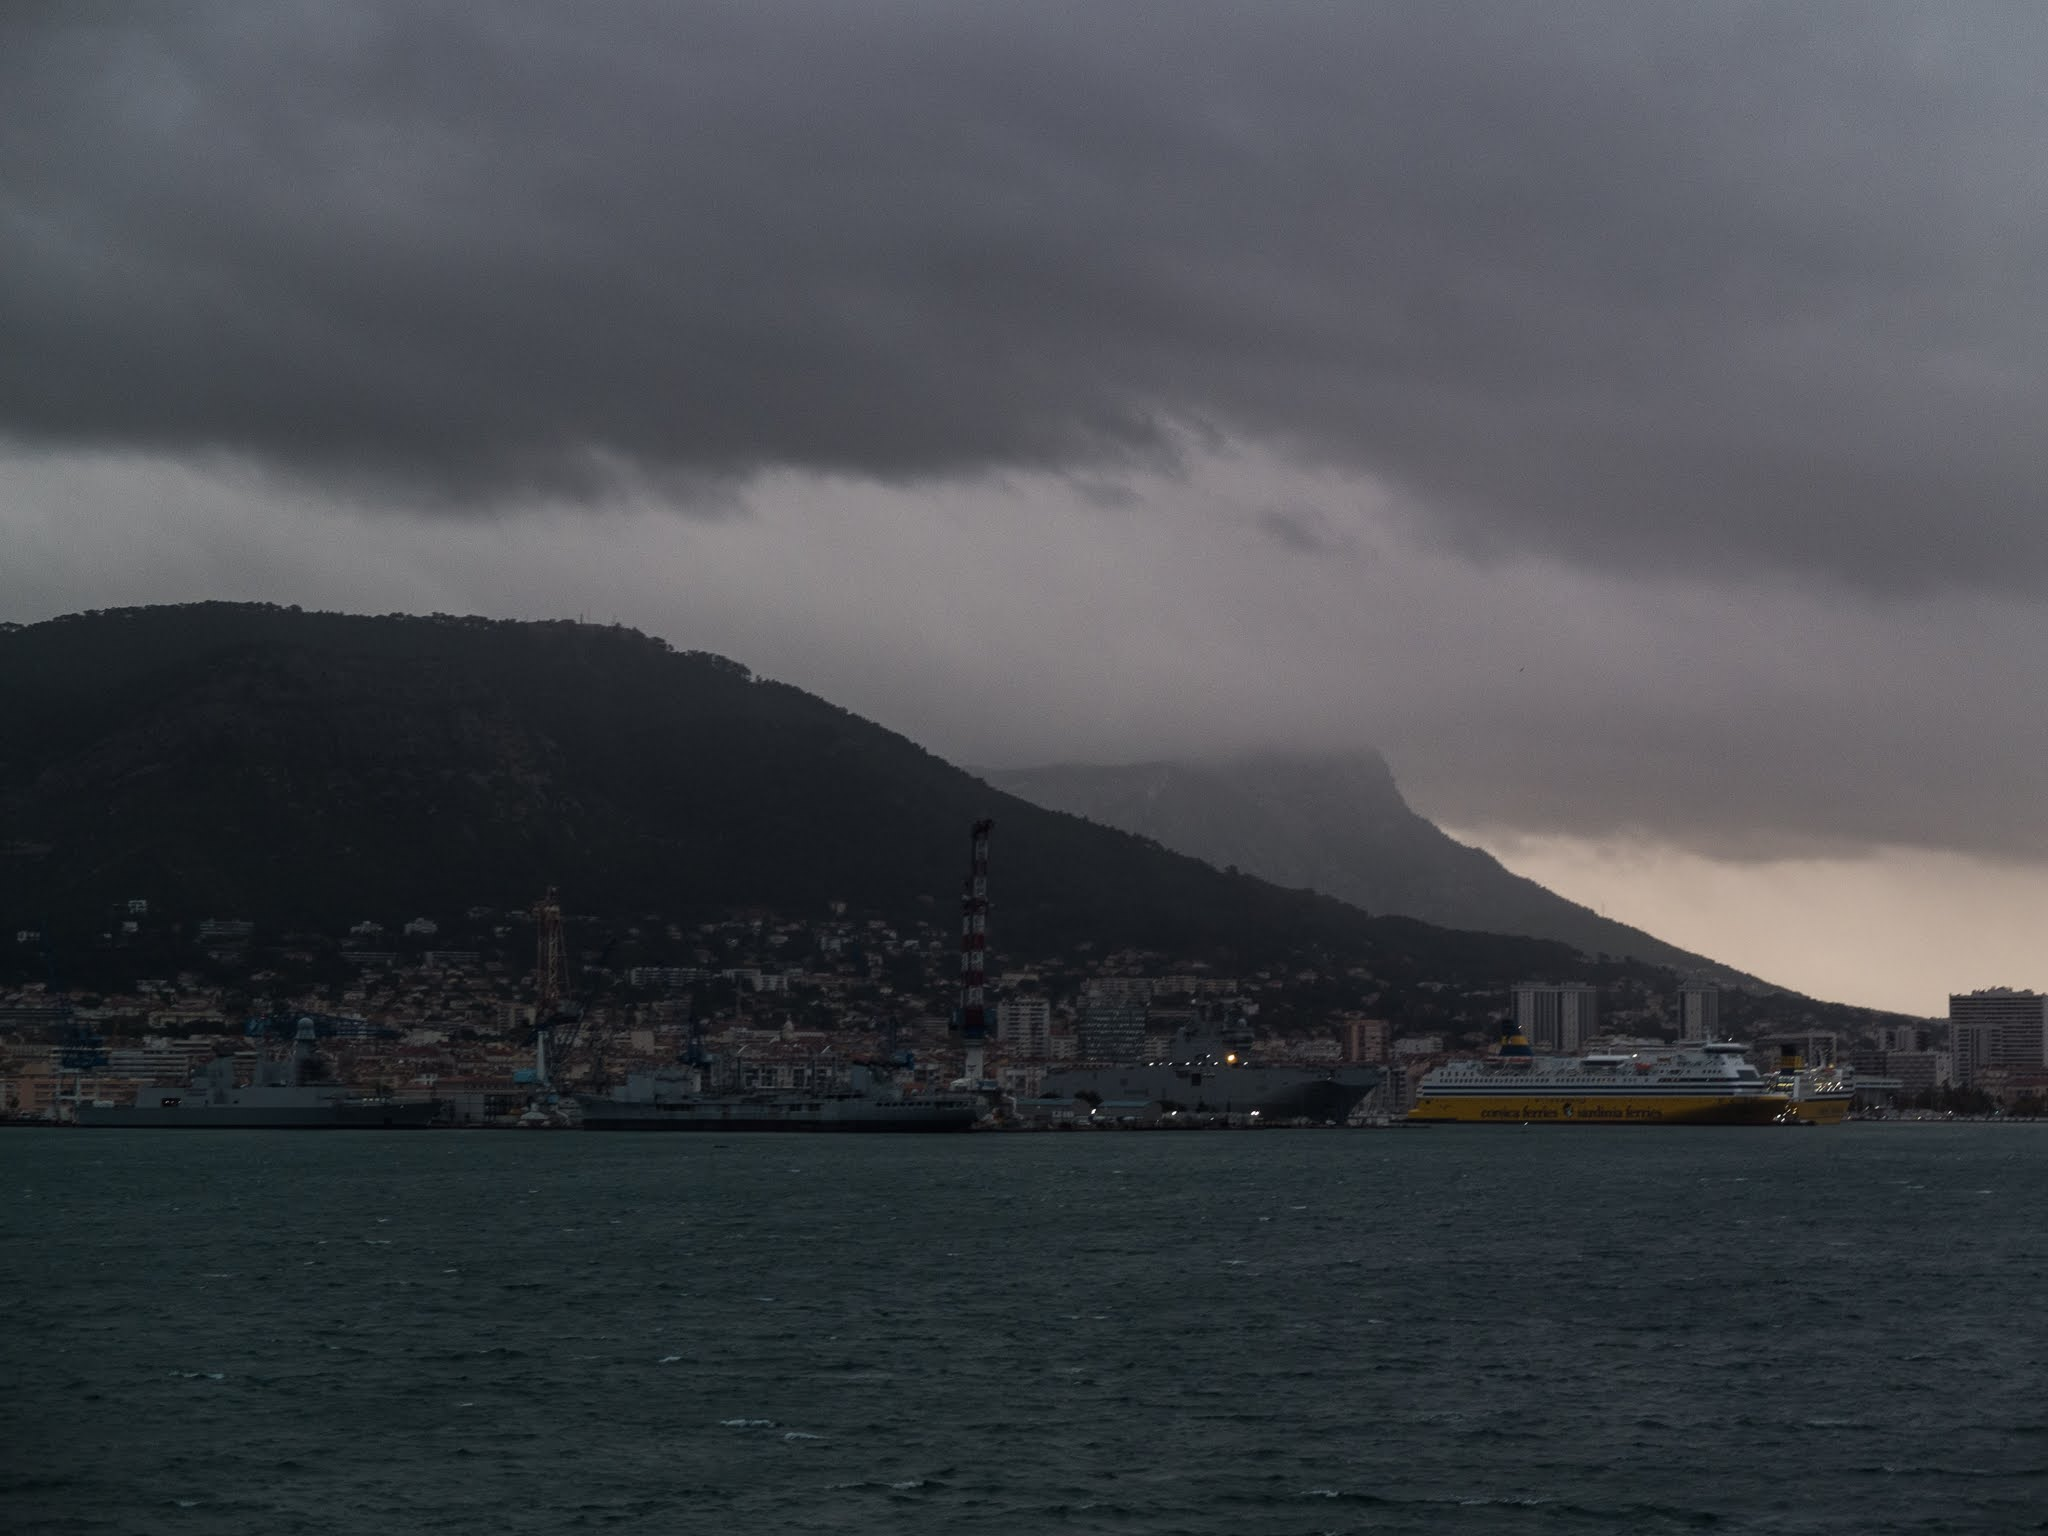 Sun rising behind the mountainside in Toulon harbour with dark clouds overhead.